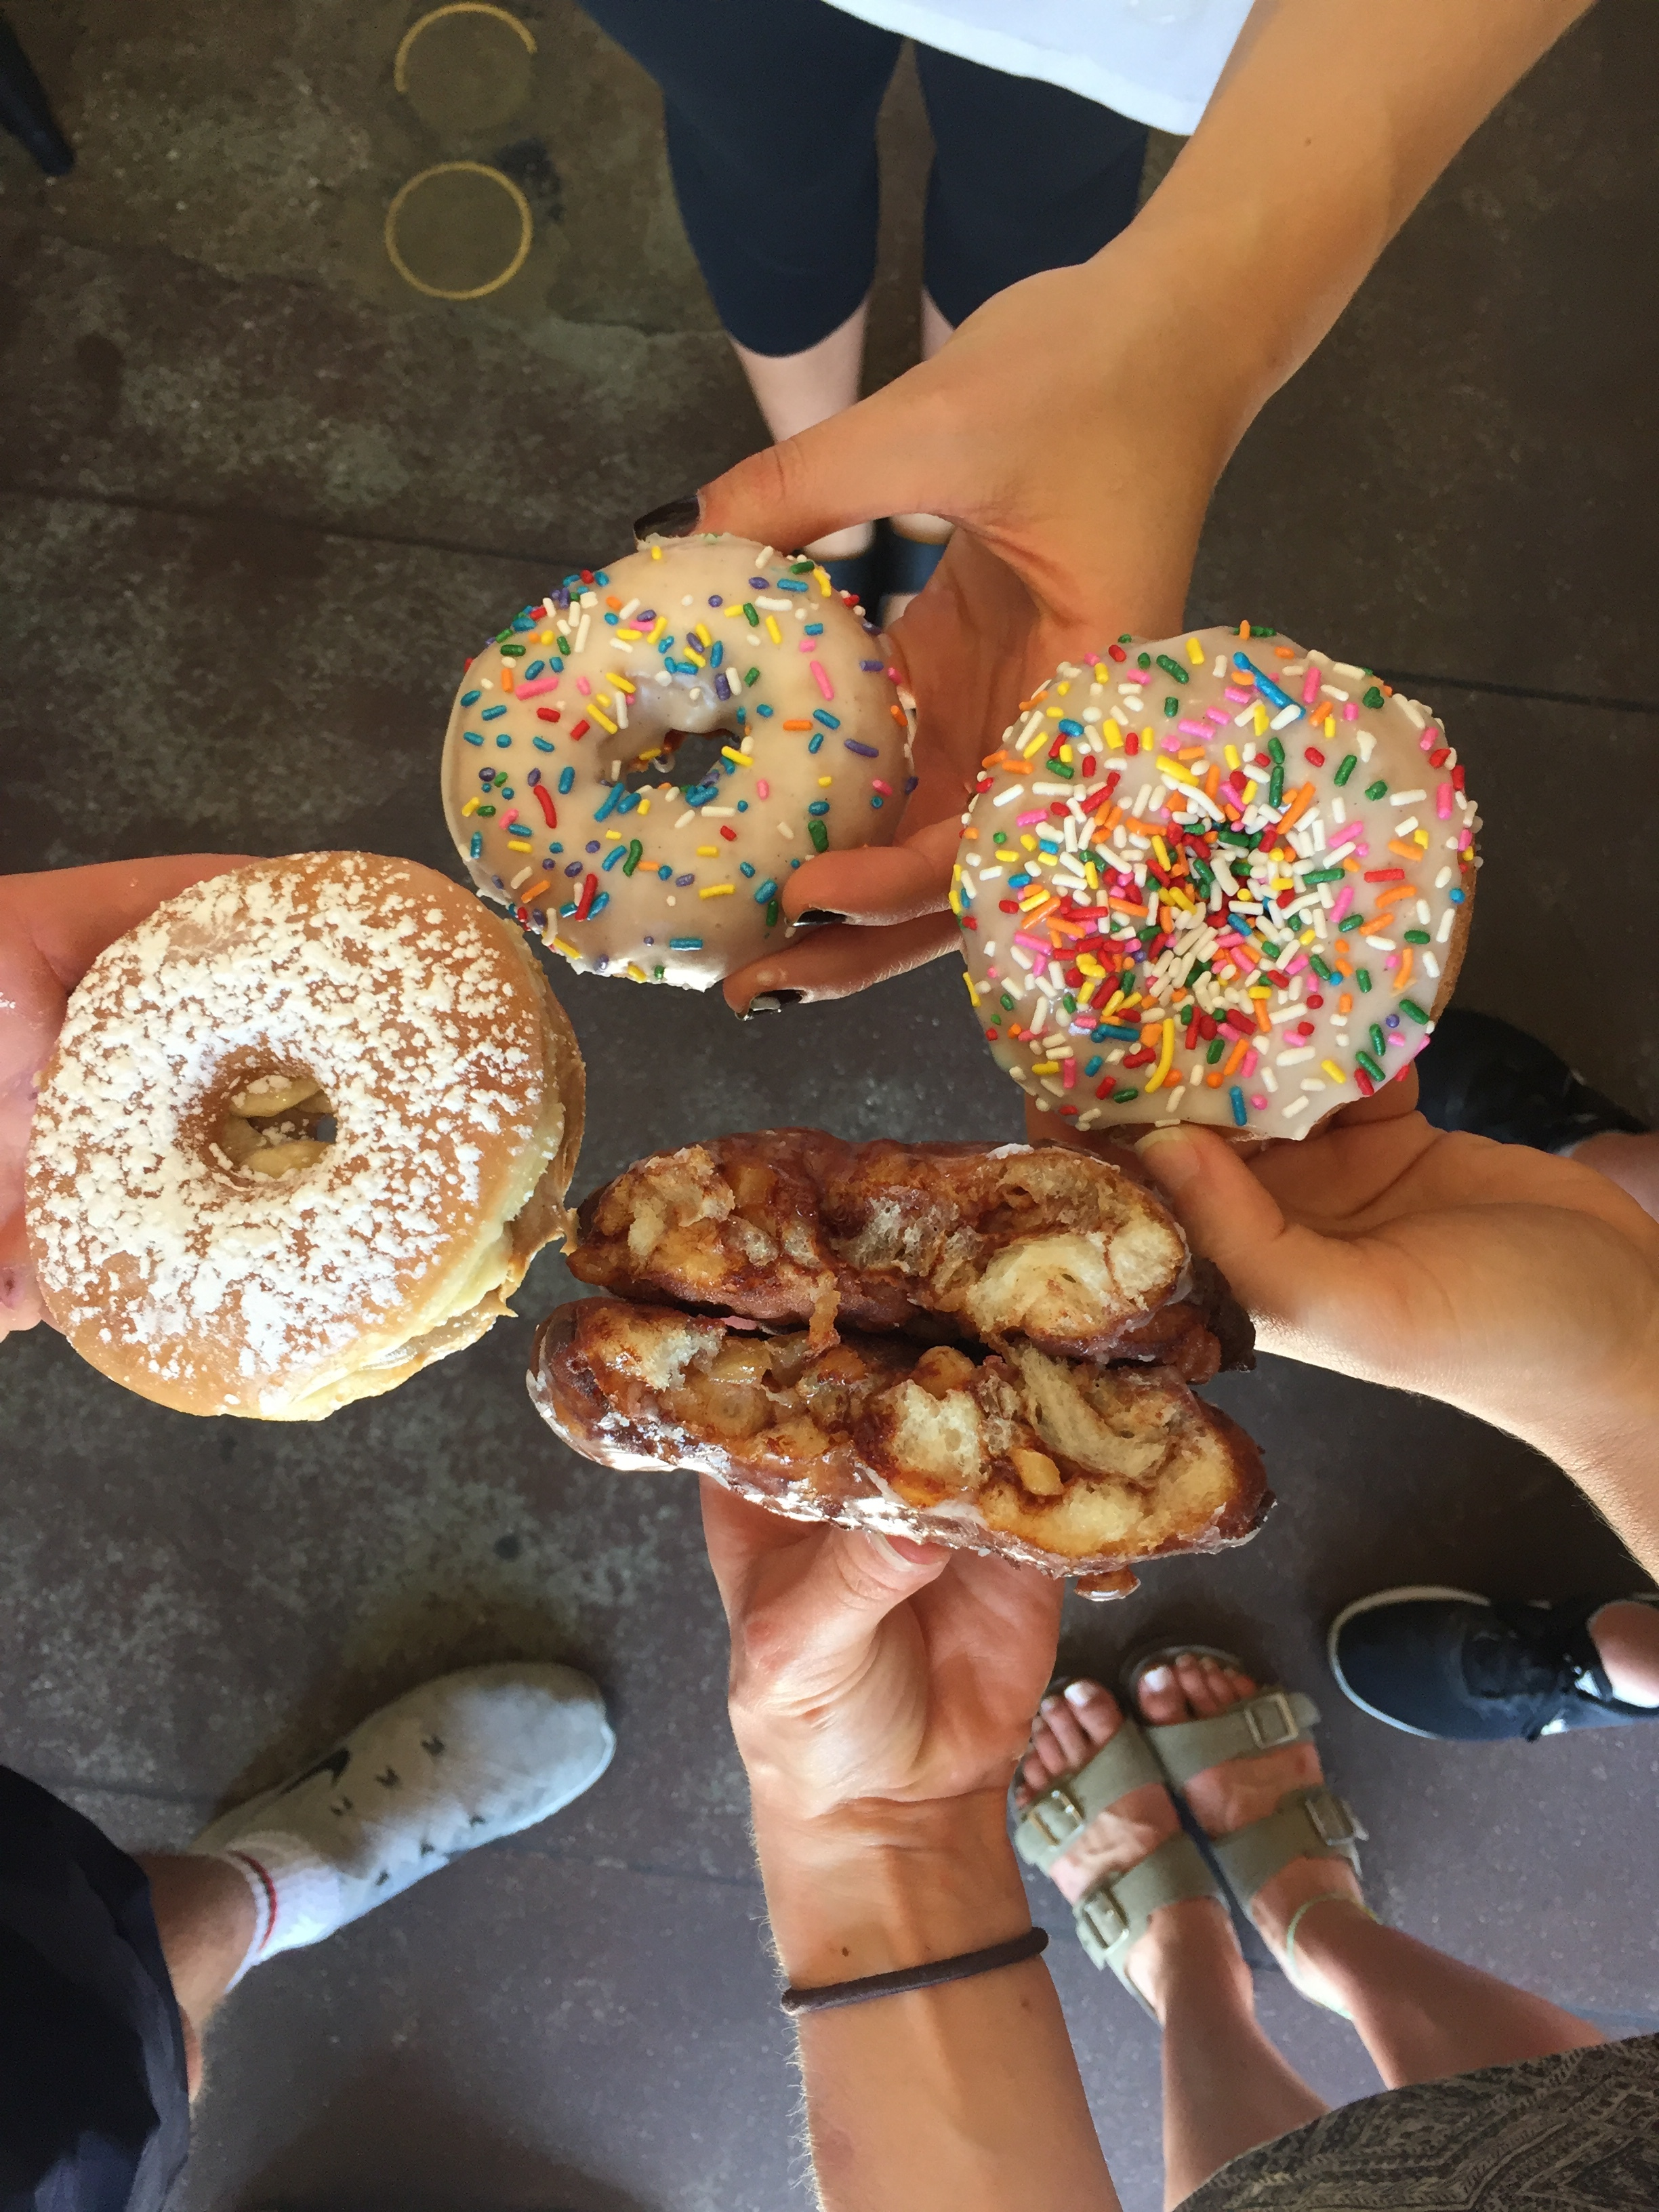 Oh, hey look. More Donut Friend. And more friends! ( @beazysbites ,  @constancelyeating ,  @emilieeats )